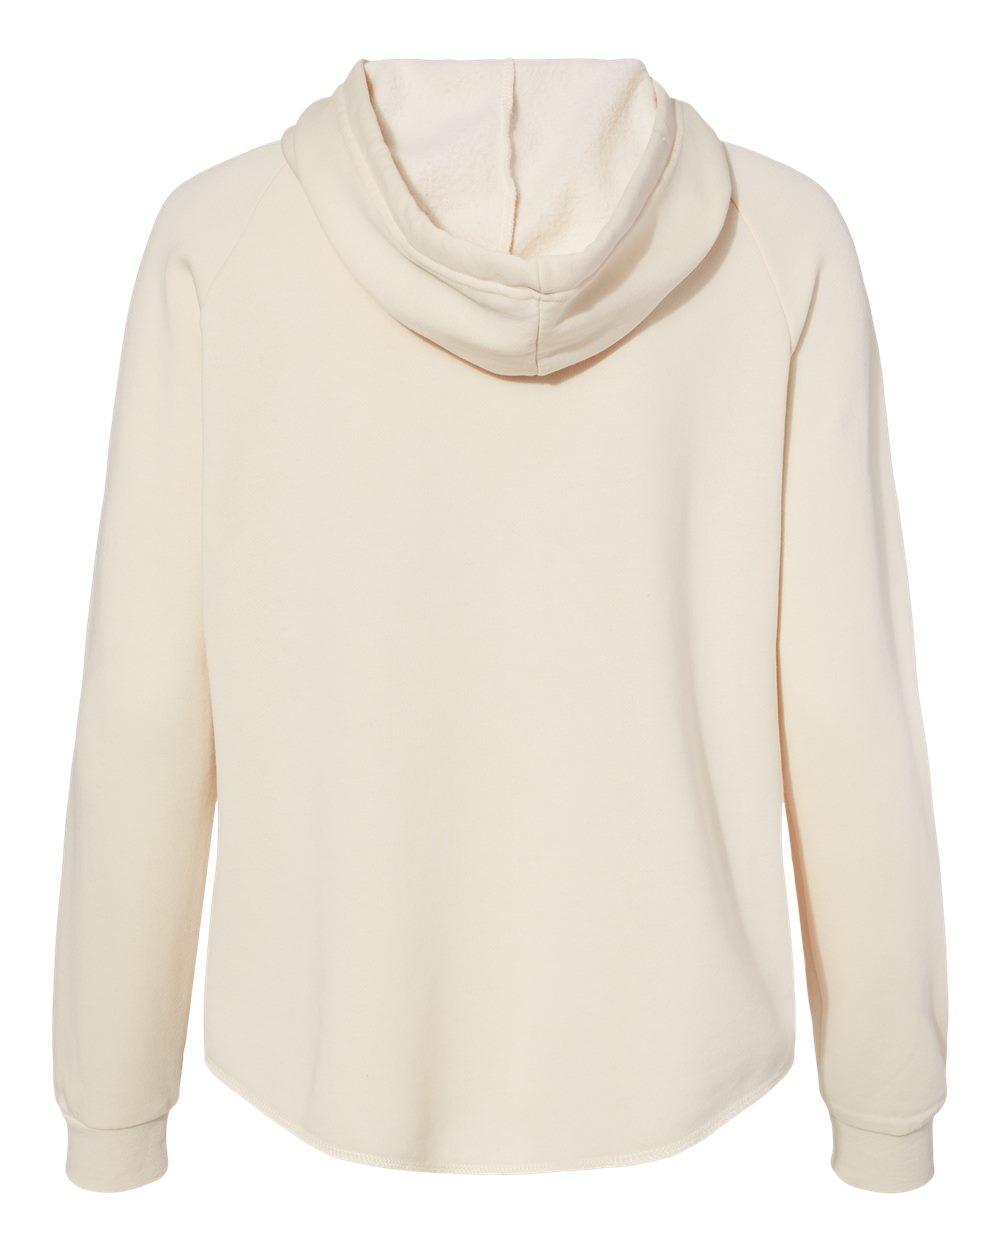 Independent-Trading-Co-Women-039-s-Wave-Wash-Full-Zip-Hooded-Sweatshirt-PRM2500Z thumbnail 3